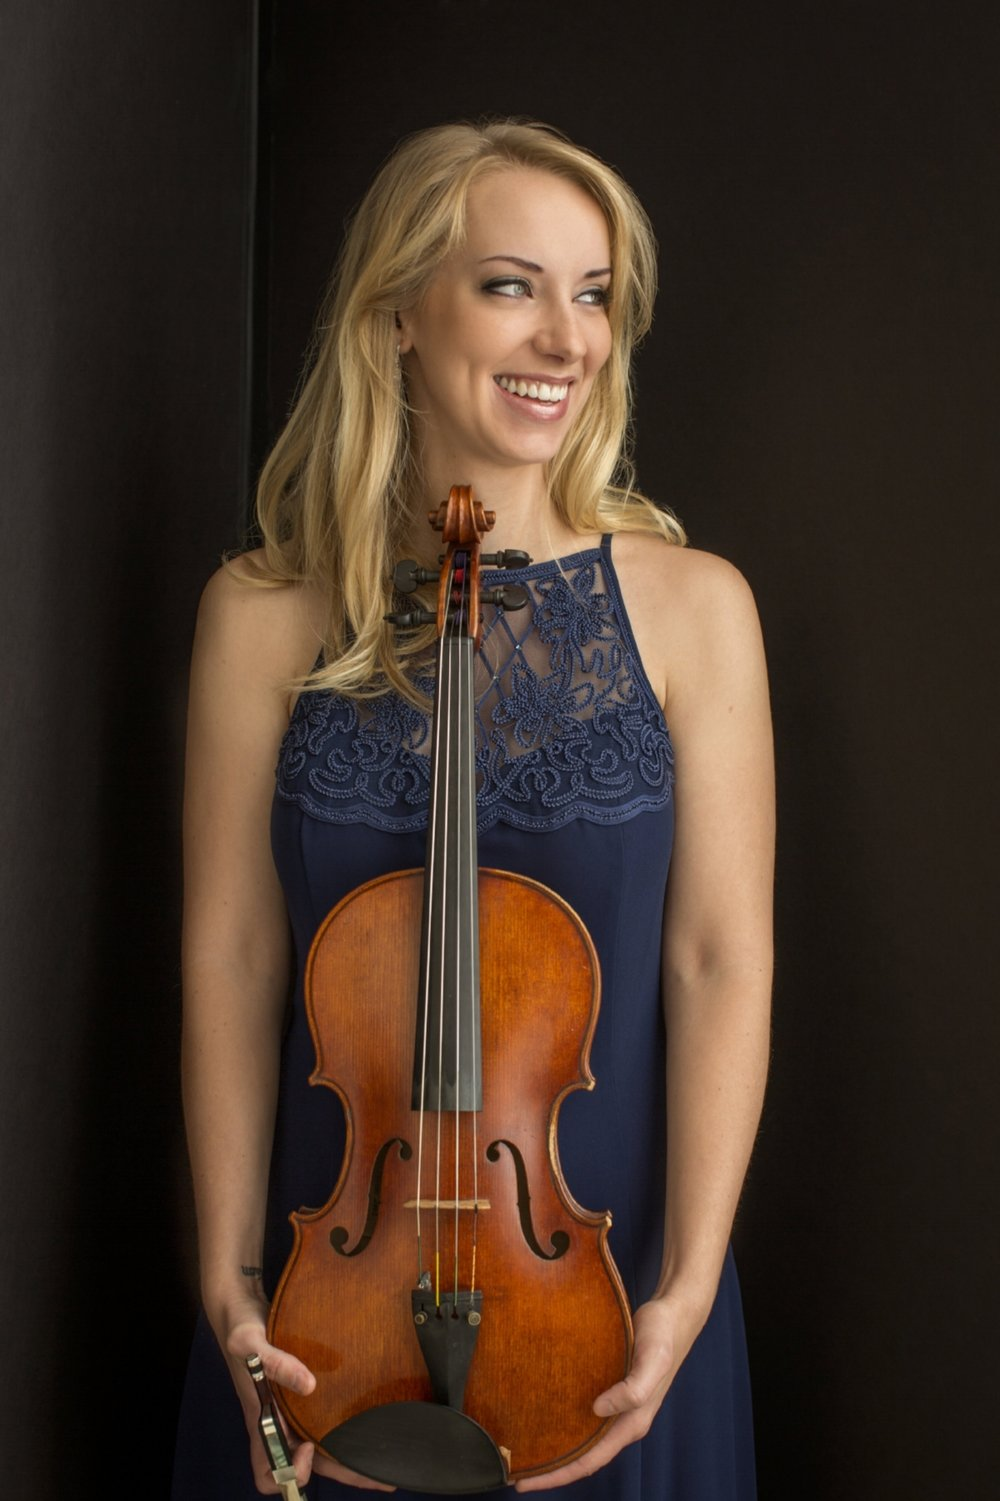 MOLLY CARR  Executive & Artistic Director  - Violist Molly Carr enjoys a diverse musical career as recitalist, chamber musician, educator and artistic director. She was a top prize winner in the Primrose International Viola Competition, made her New York solo debut at Lincoln Center with the Juilliard Orchestra, and has performed in festivals across North America, Europe, and Asia.  Ms. Carr is a member of the Solera Quartet, Quartet in Residence at the University of Notre Dame, and is the founding/executive and artistic director of PROJECT: MUSIC HEALS US. Ms. Carr earned her Bachelor and Master of Music degrees from the Juilliard School and currently serves on the viola faculty of the Juilliard School's PreCollege Program. [See full bio under